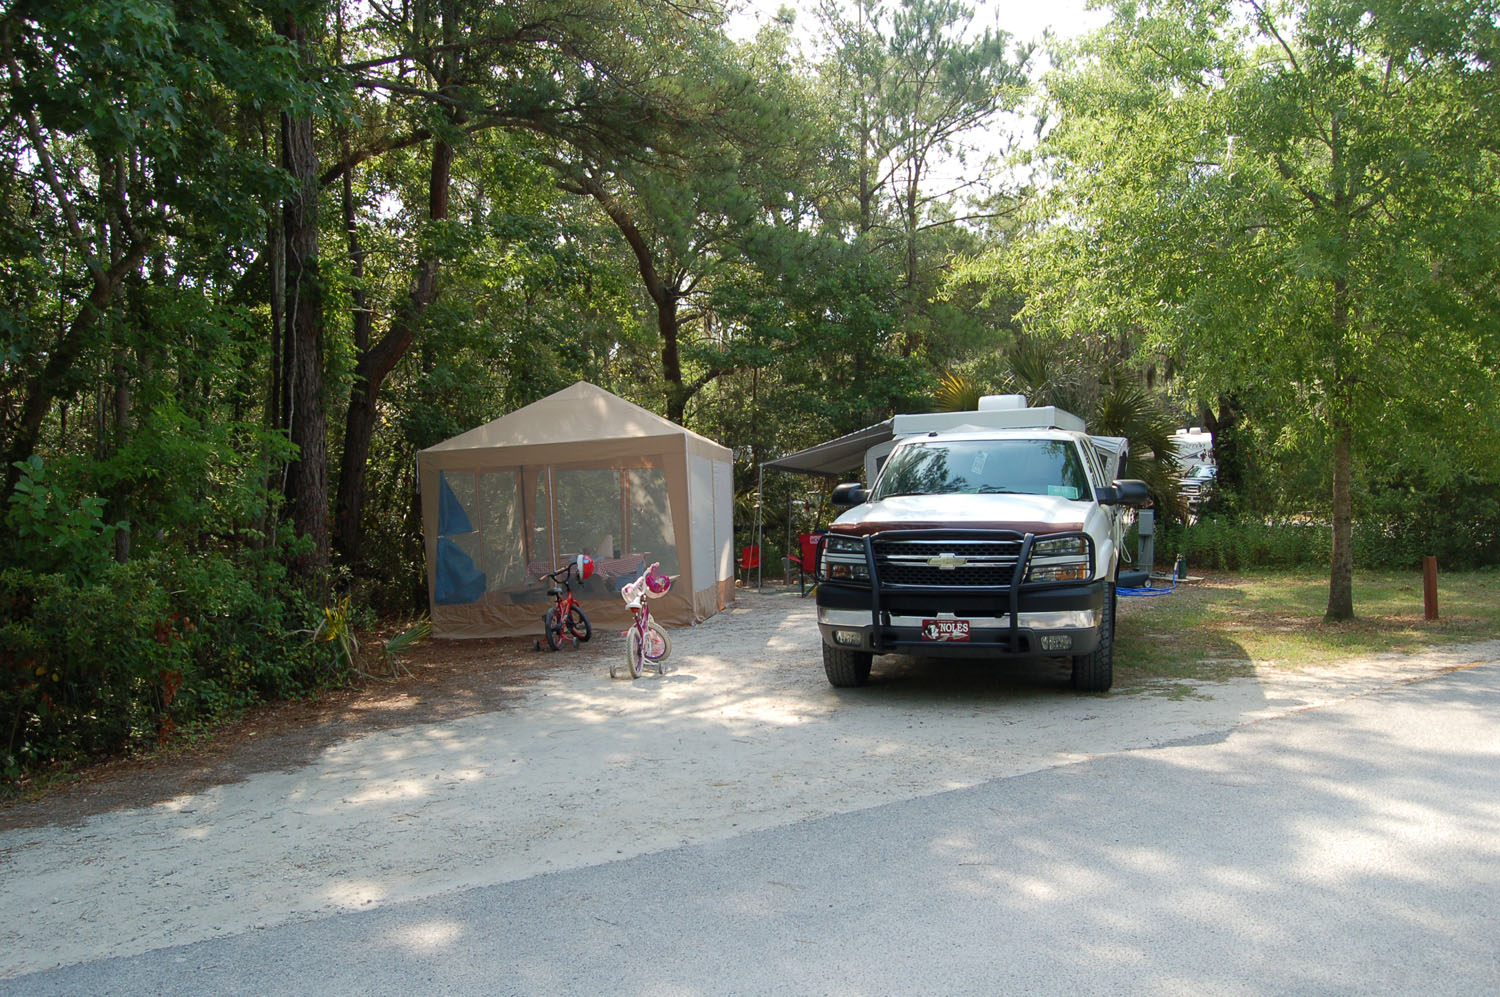 Image of campsite #22 at the Campground at James Island County Park